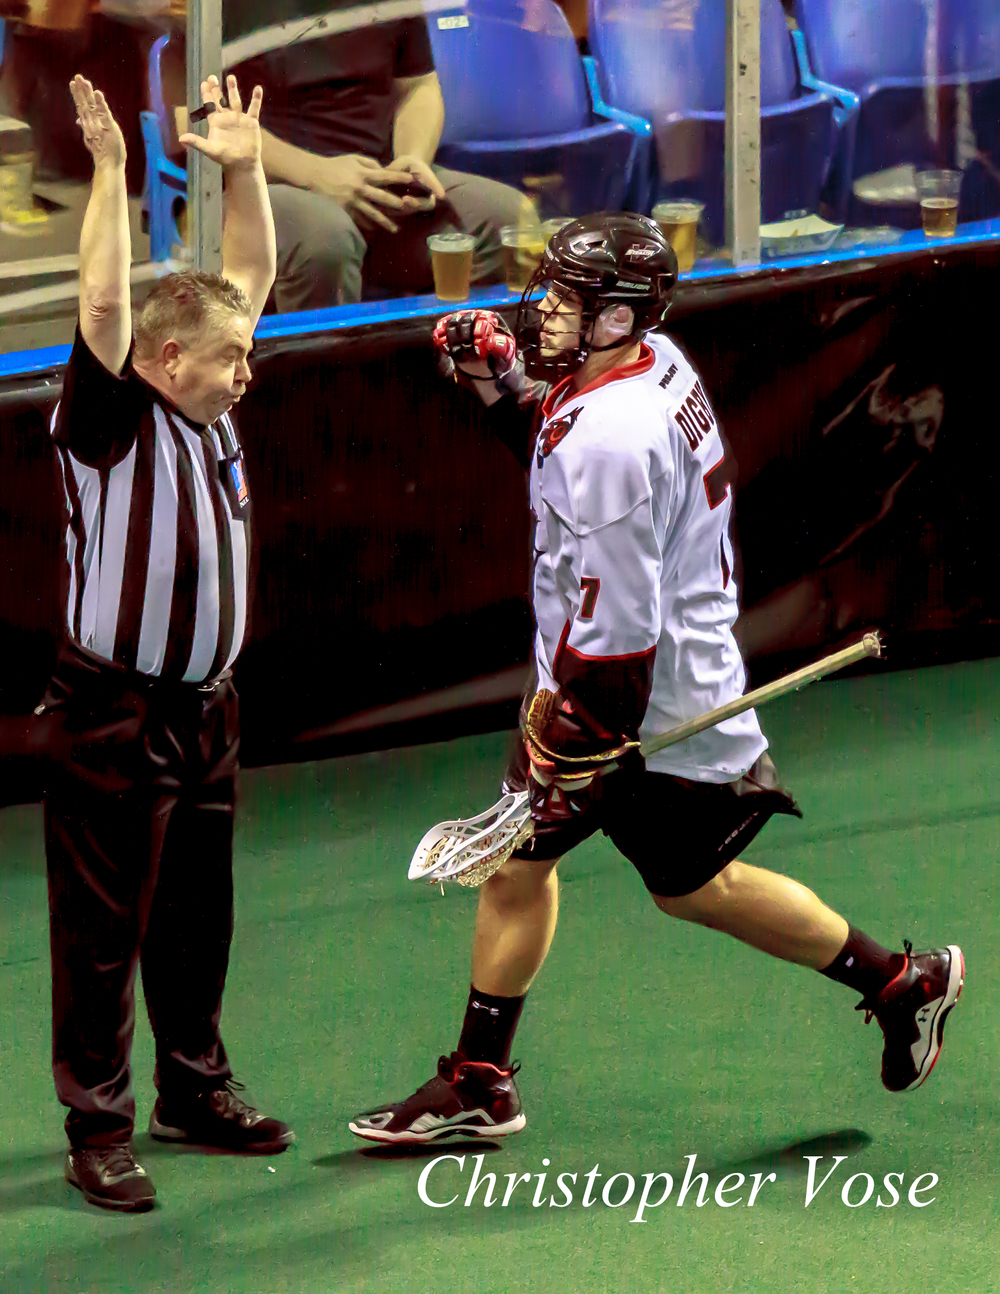 2014-01-11 Tyler Digby Goal Celebration.jpg